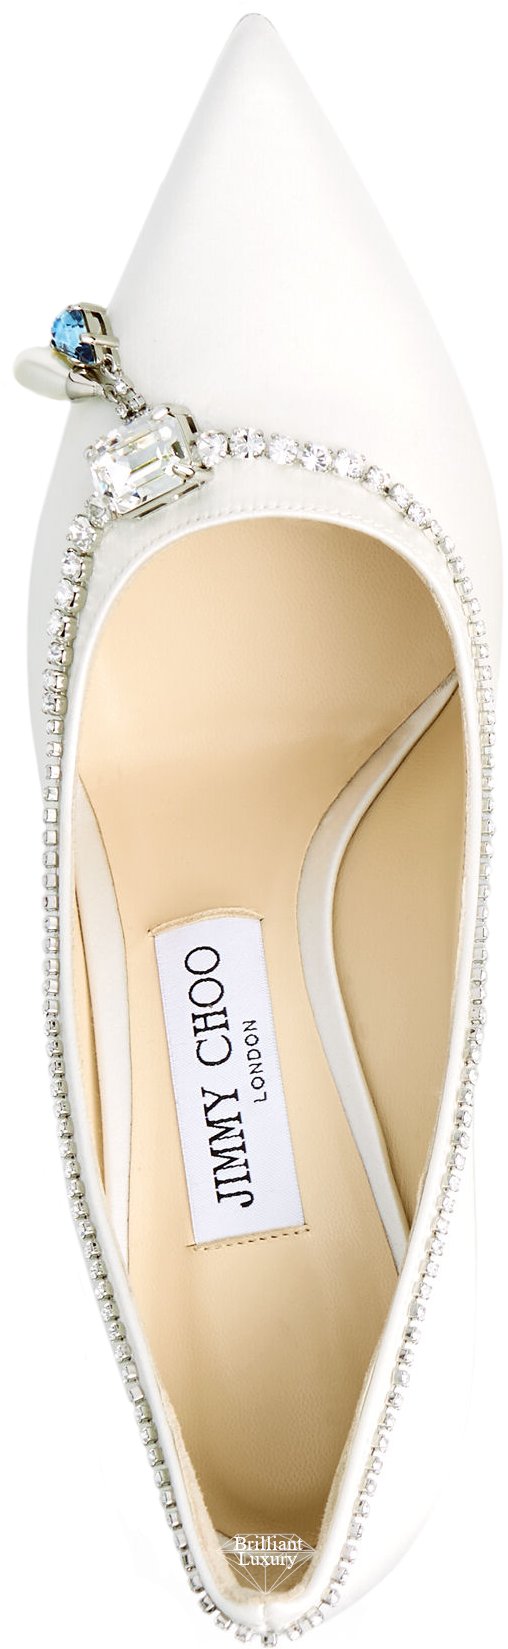 Jimmy Choo Love satin pumps with blue crystal necklace detail #brilliantluxury